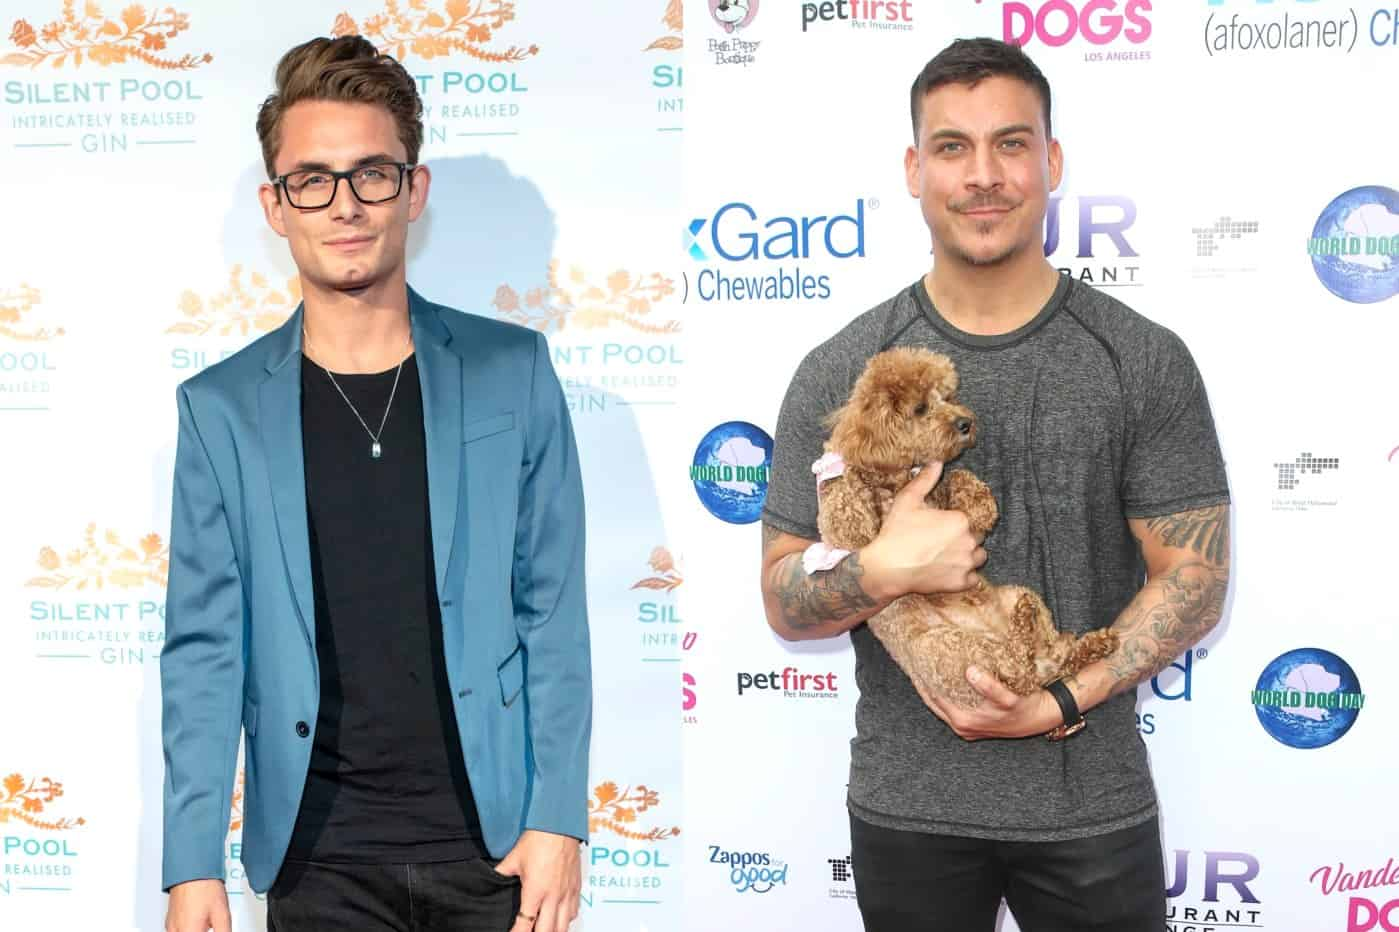 Vanderpump Rules James Kennedy vs Jax Taylor in Twitter Feud